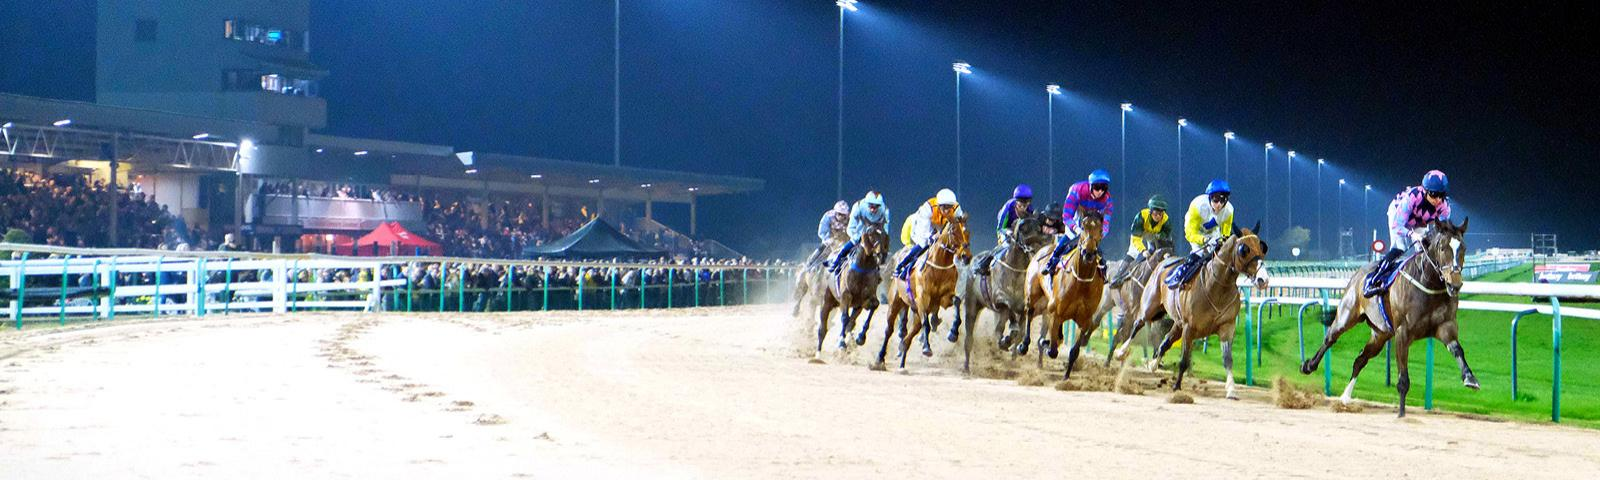 Horse racing under the floodlights